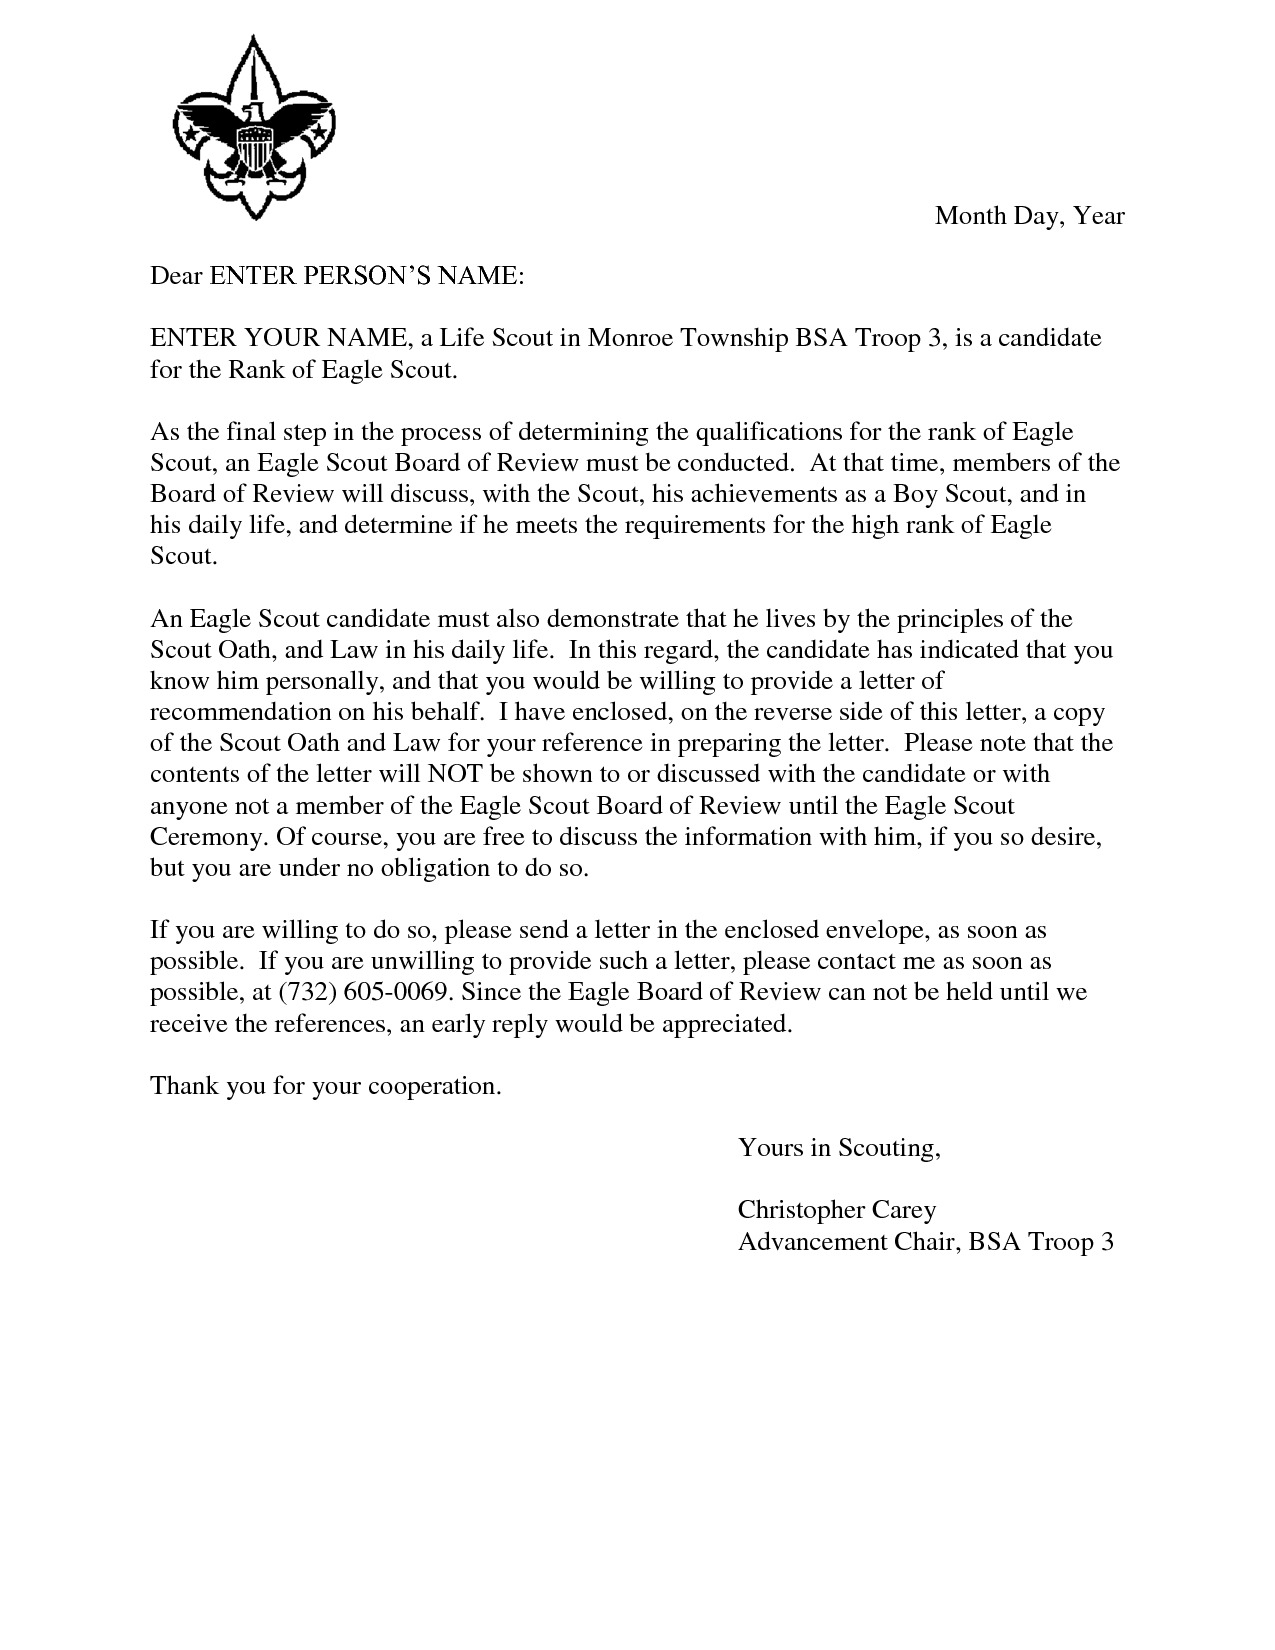 Prayer Letter Template Download - Happy Birthday Letter Template Luxury Eagle Scout Reference Request